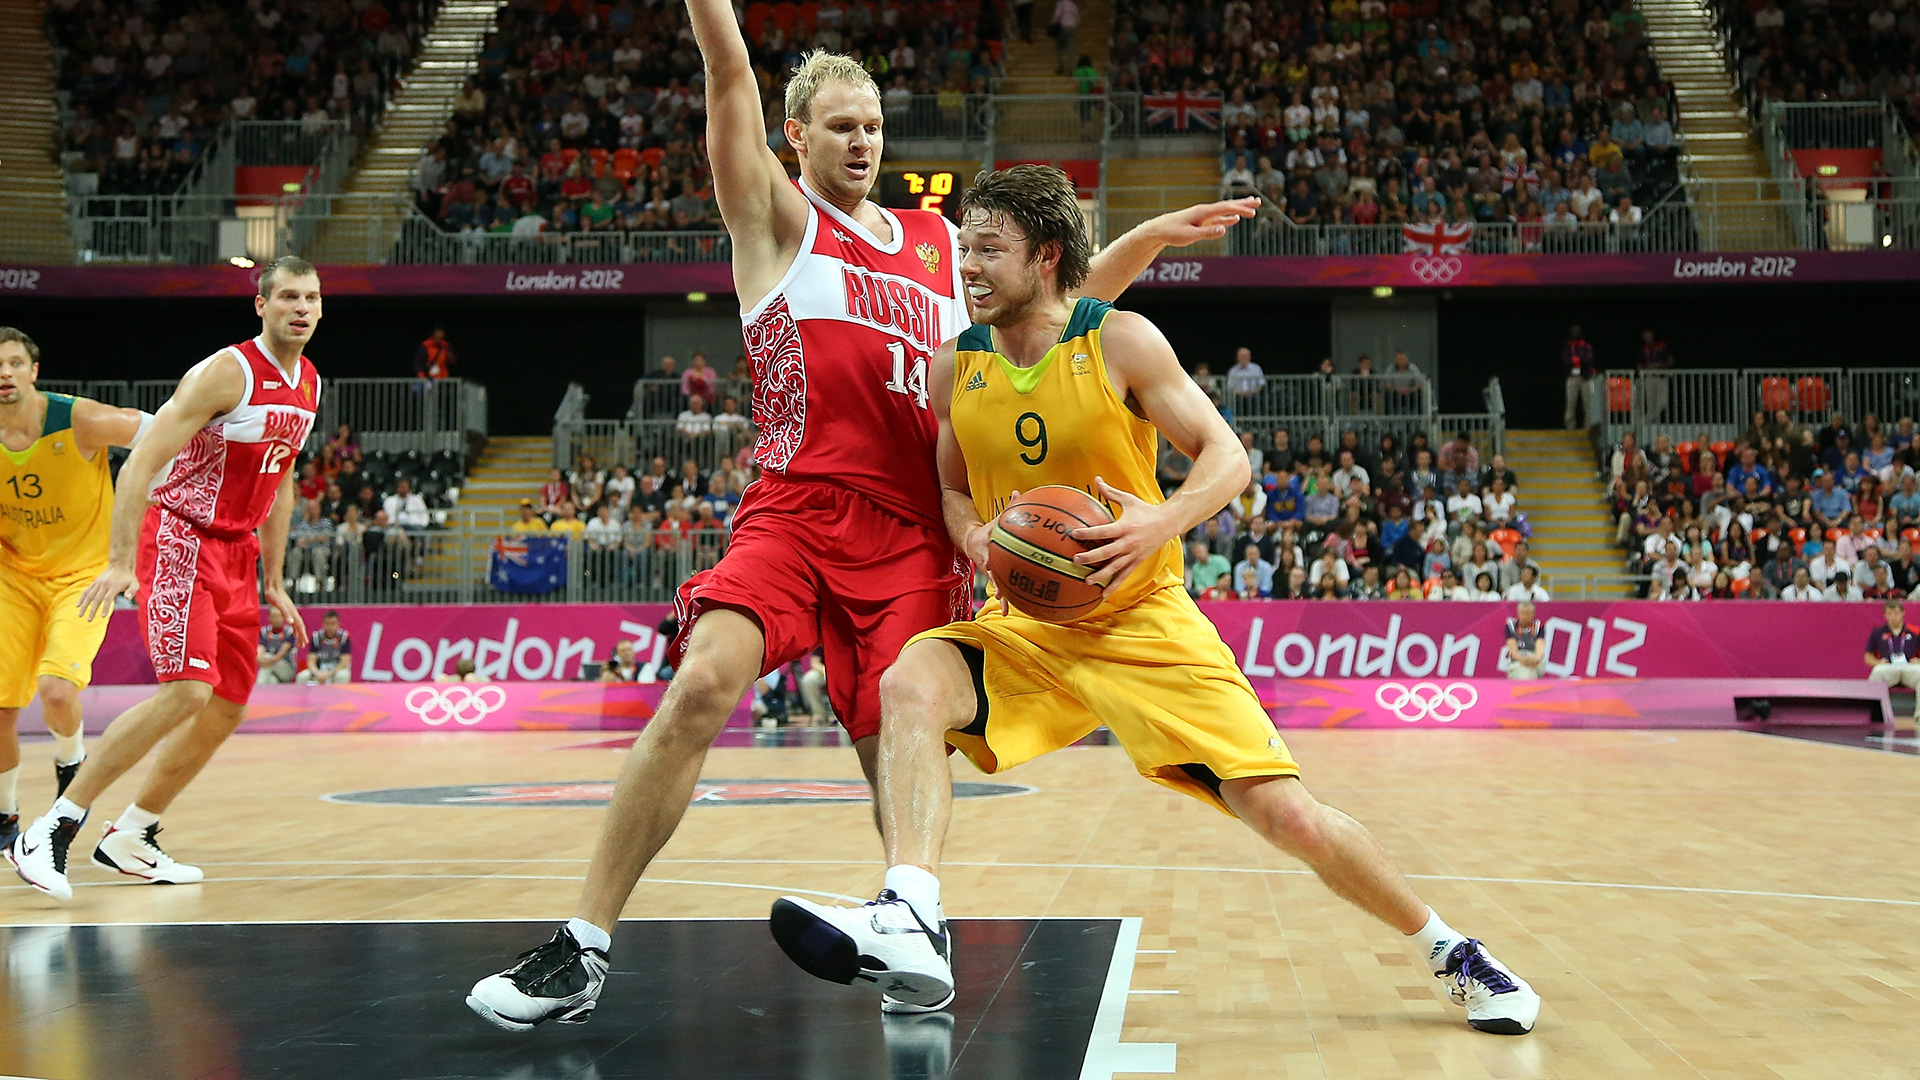 Olympic basketball: How the 12-team field stacks up (behind Team USA) | Sporting News